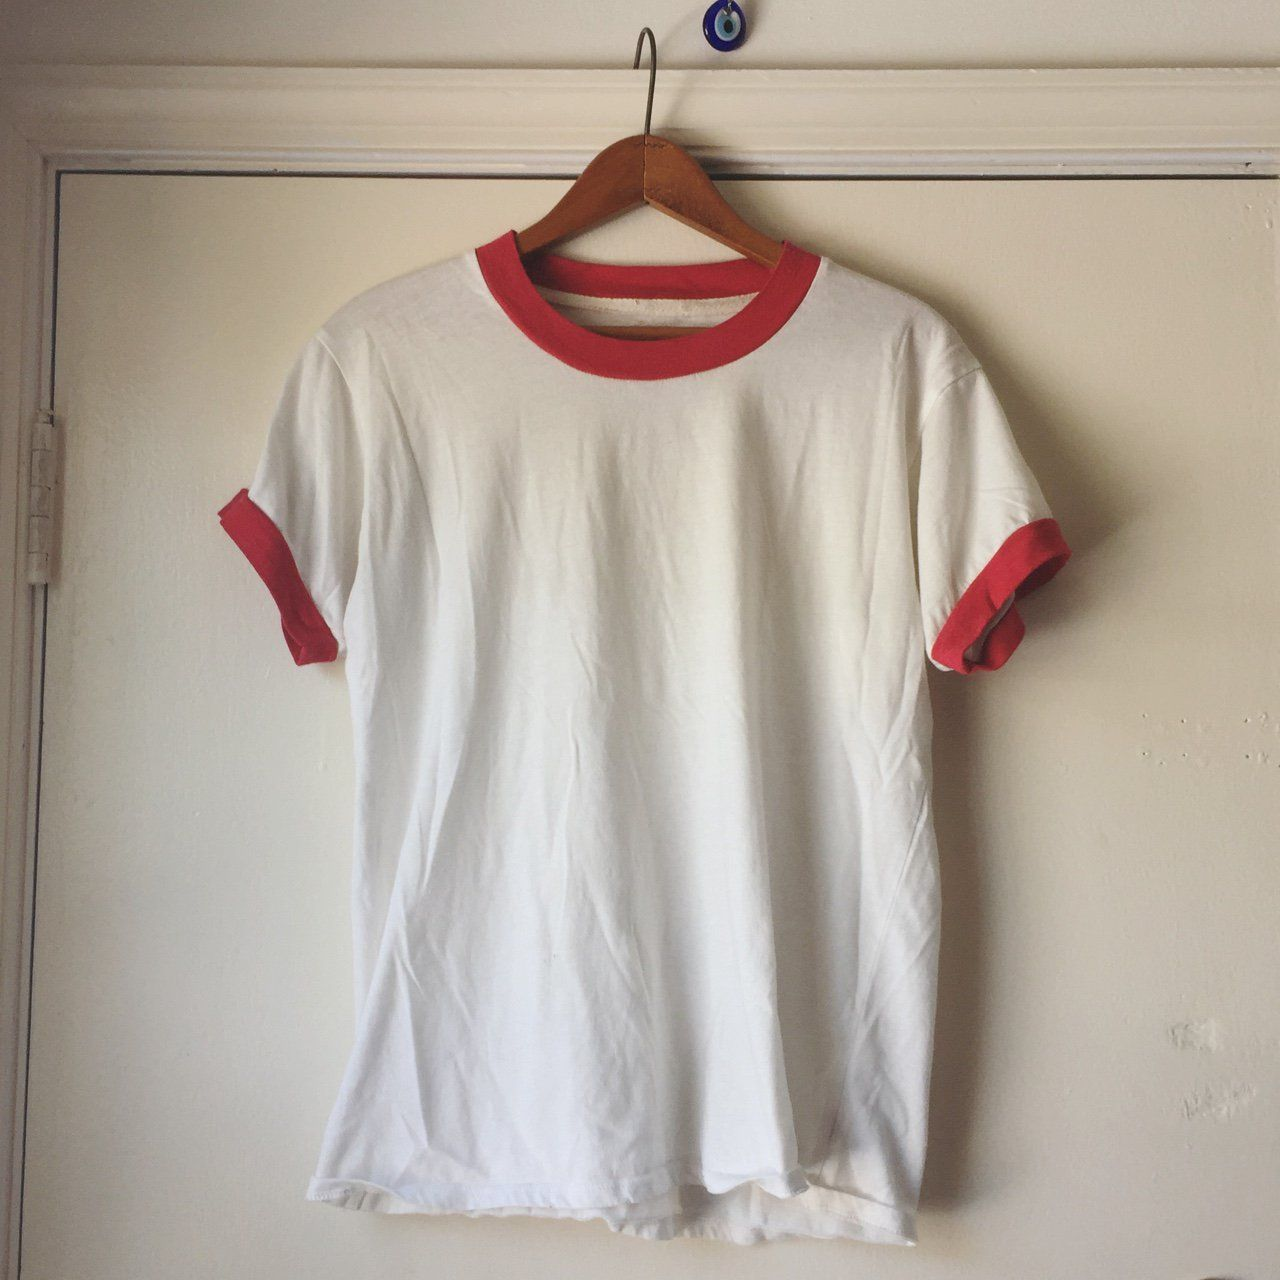 40661552eb8b Camp Ringer Tee! I bought this from Camp Collection for my boyfriend and he  accidentally shrunk it